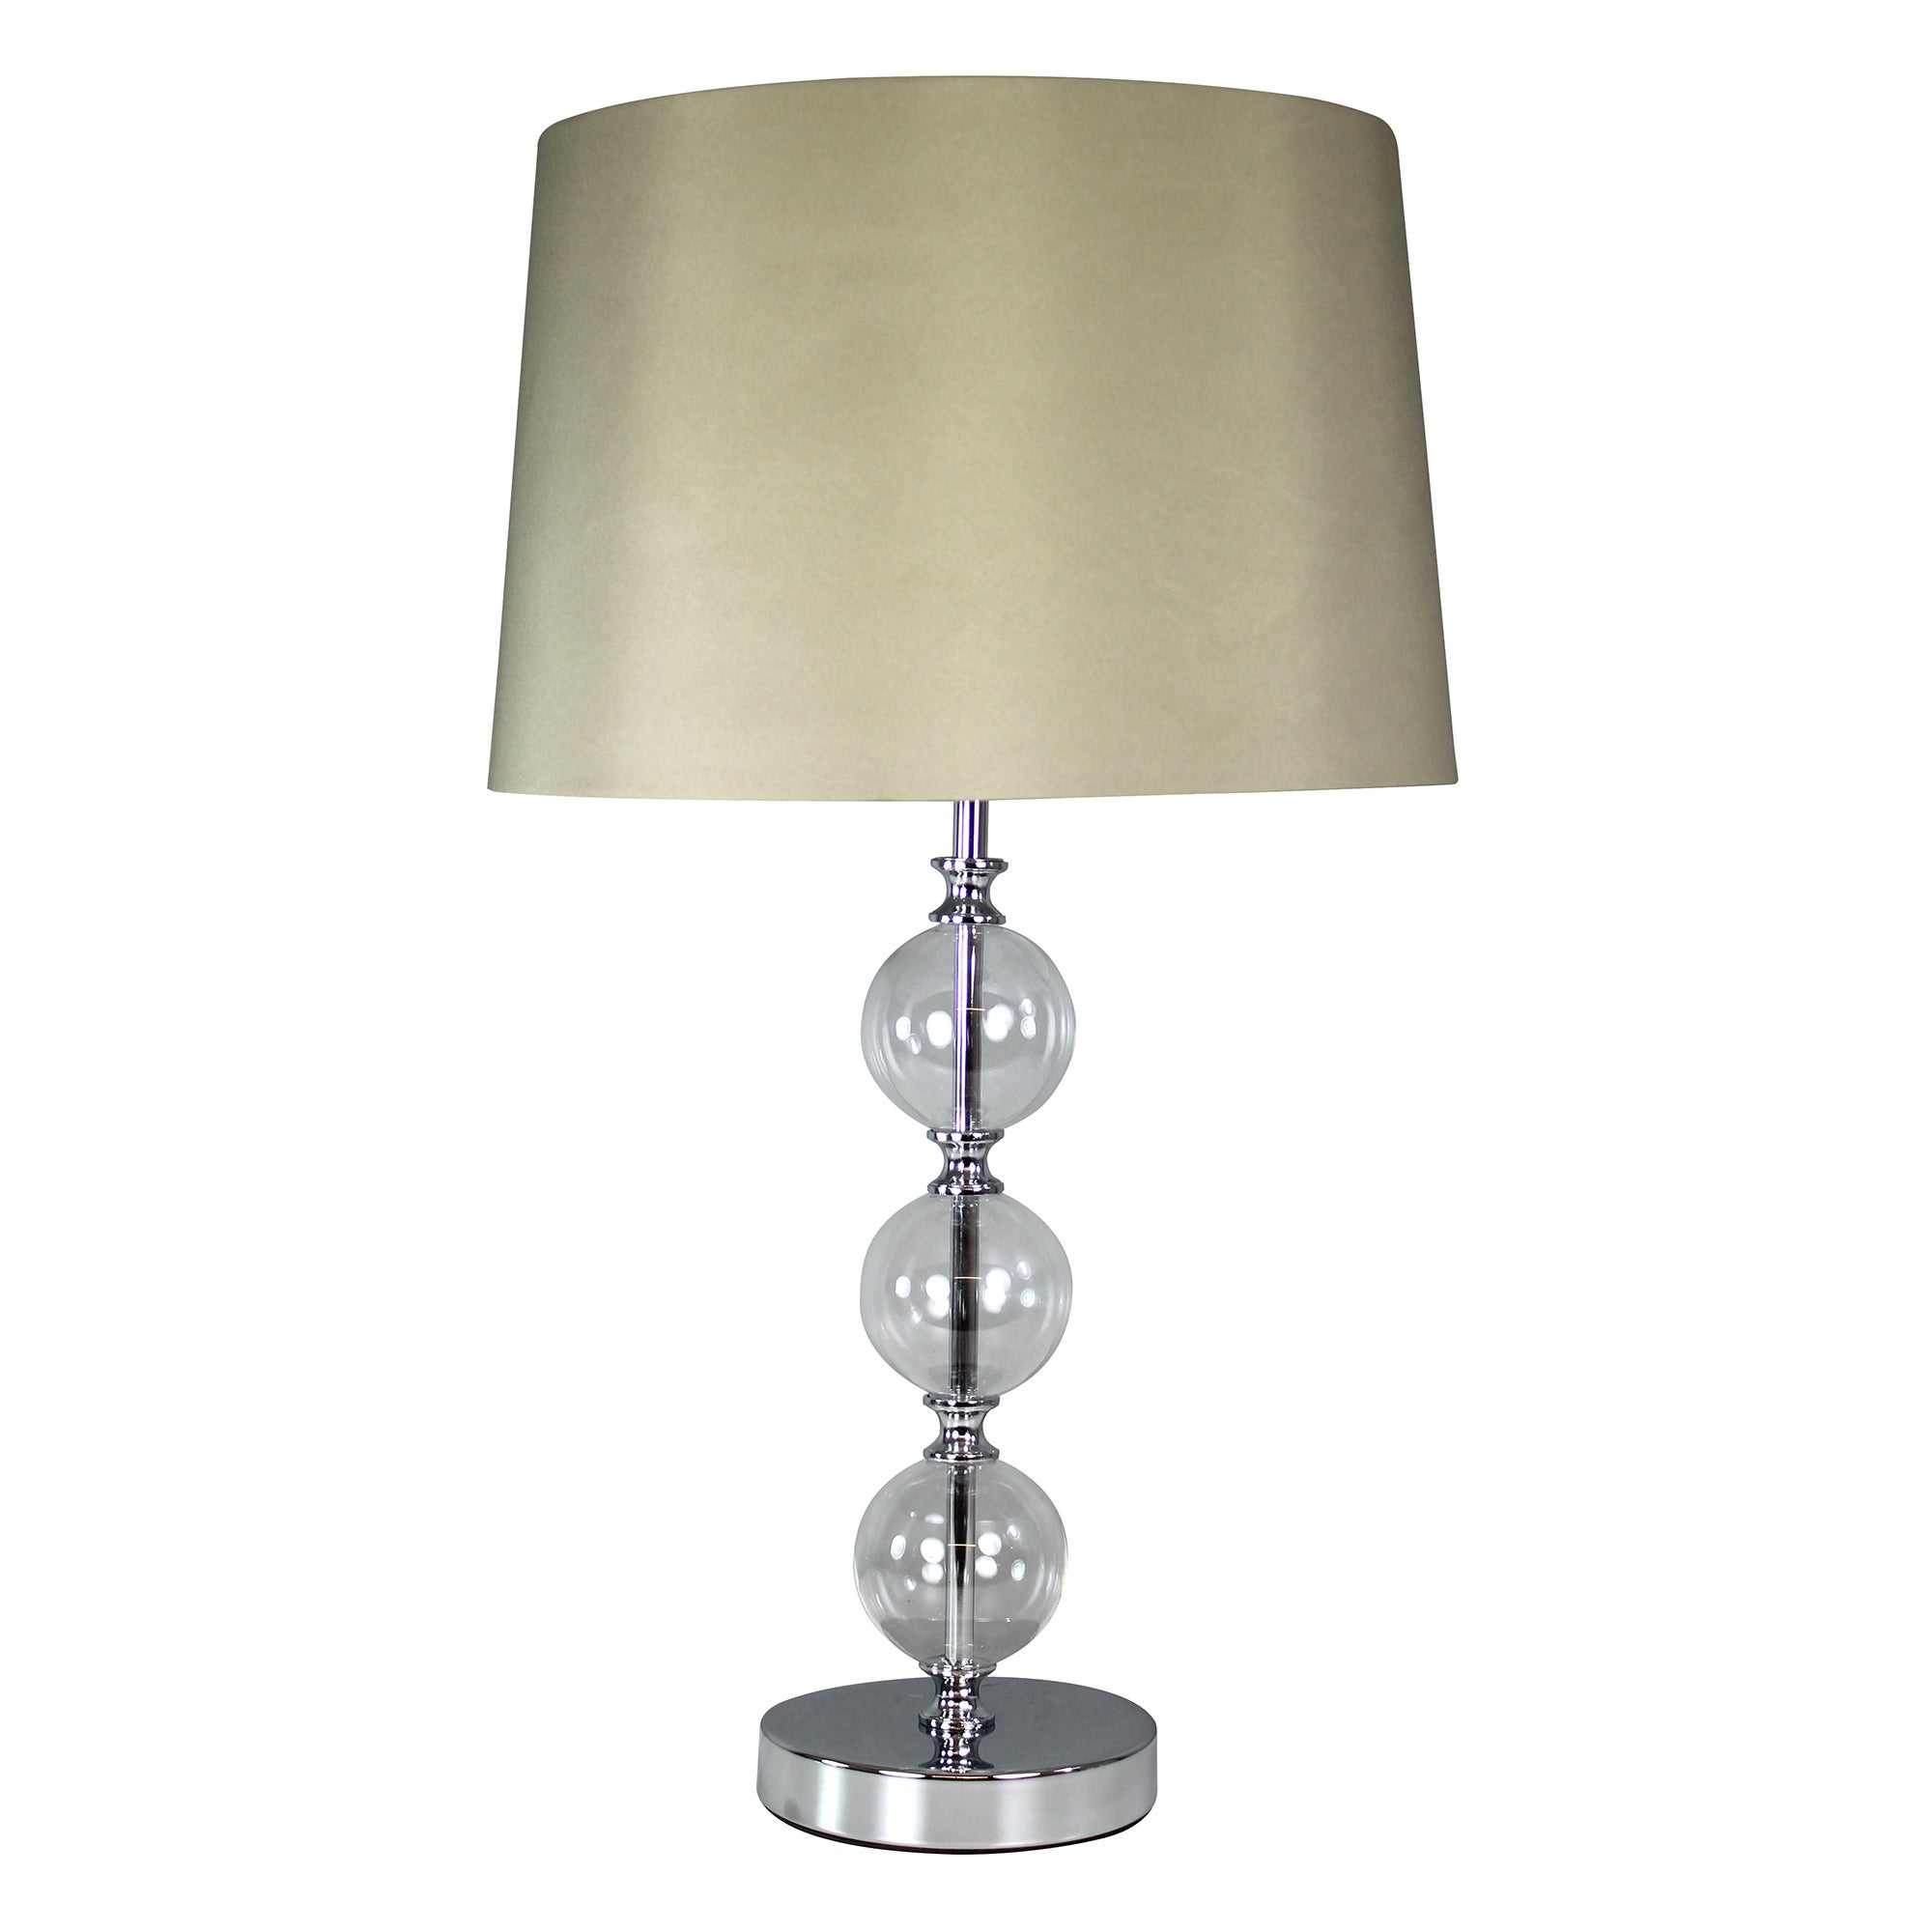 Elise 3 Ball Table Lamp